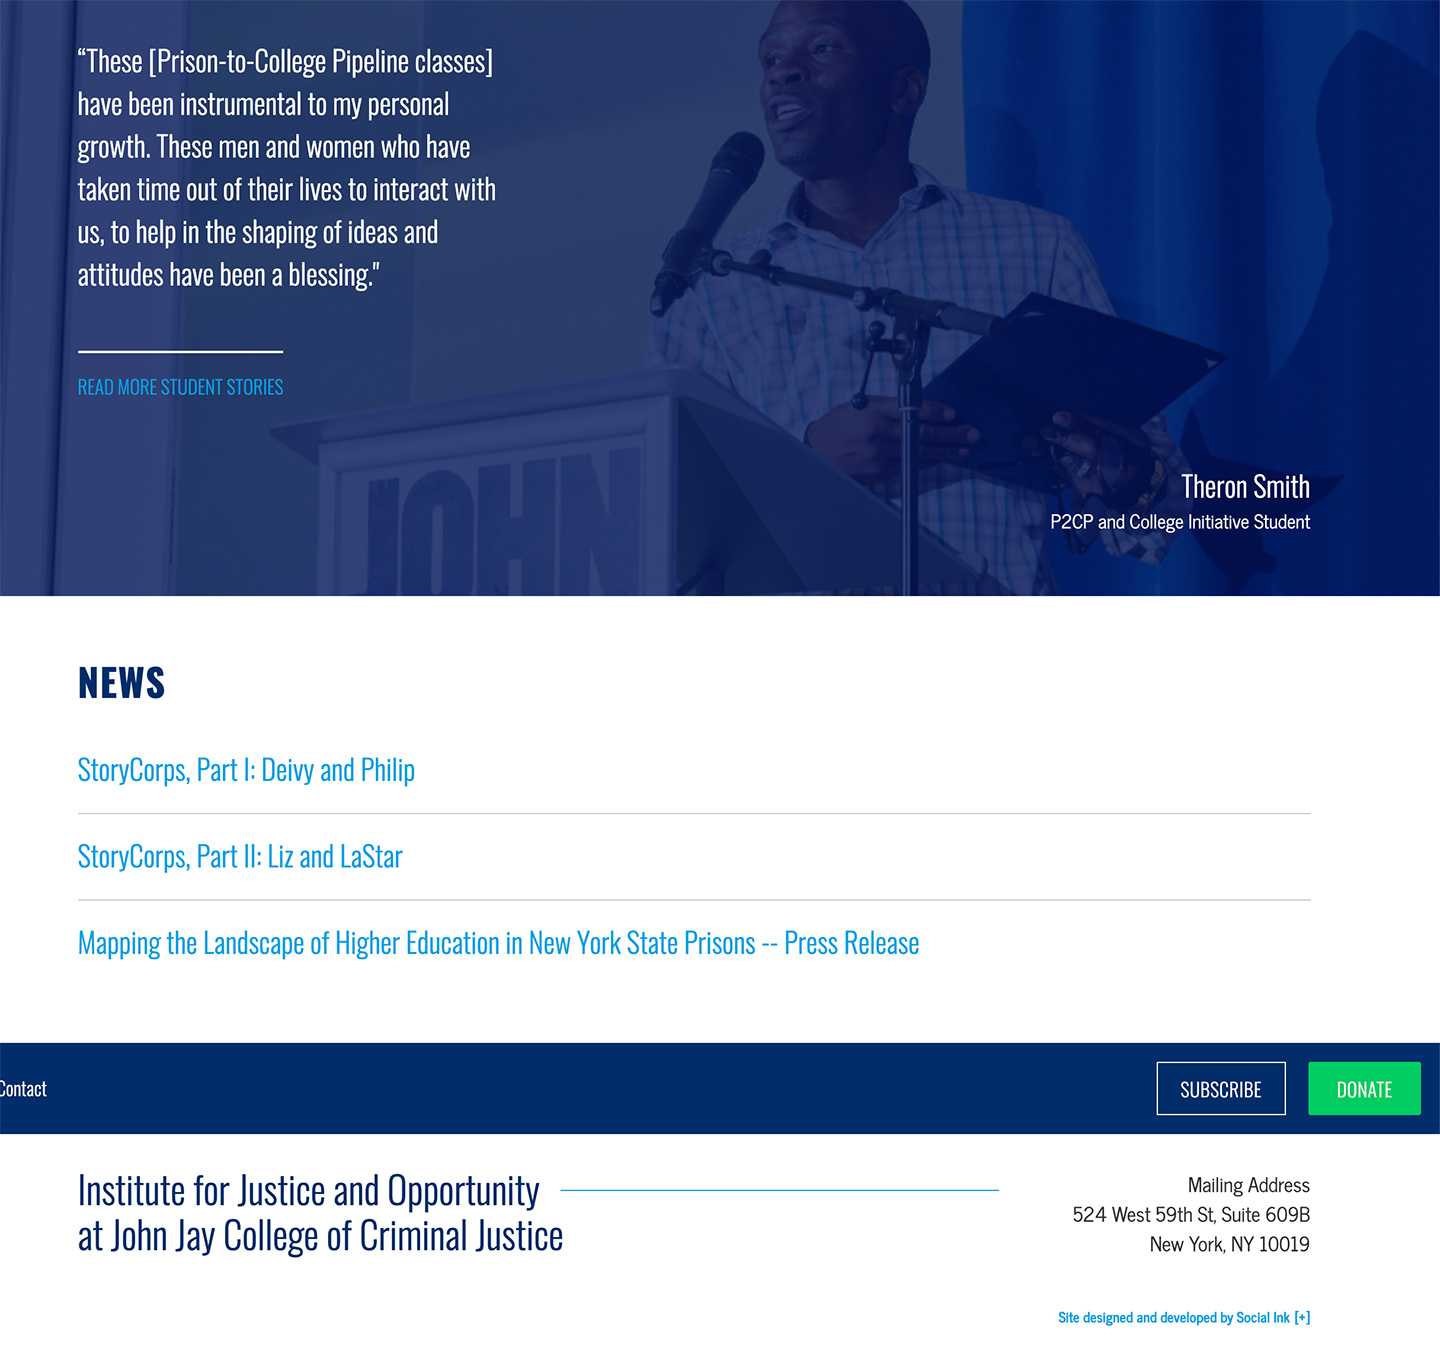 Institute for Justice and Opportunity (CUNY John Jay): John Jay Institute for Justice and Opportunity: Home Featured Stories